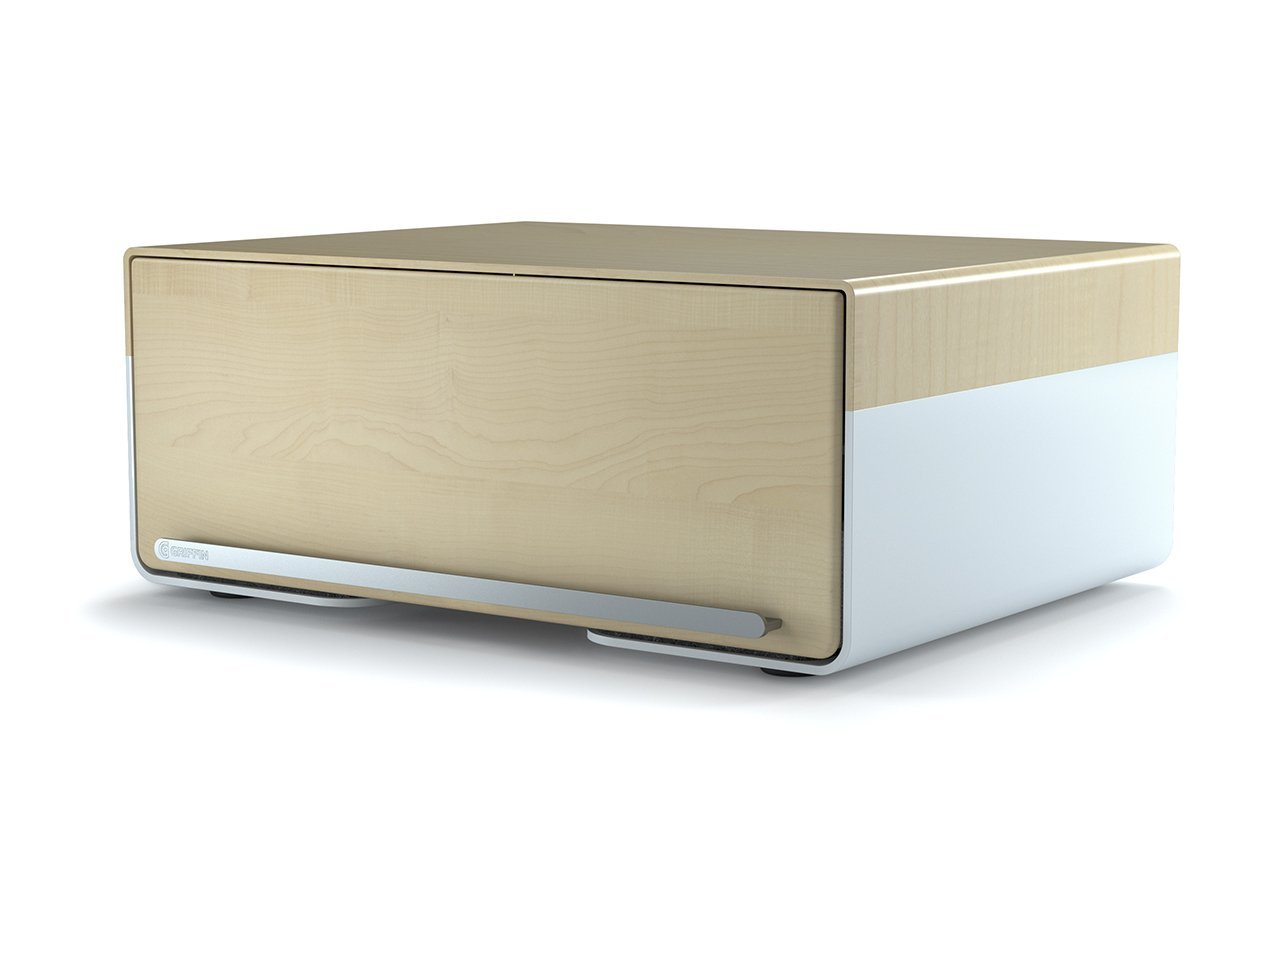 Griffin Cove USB 5-Port Charging Station, Light Birch - An elegant place to store and charge everything.